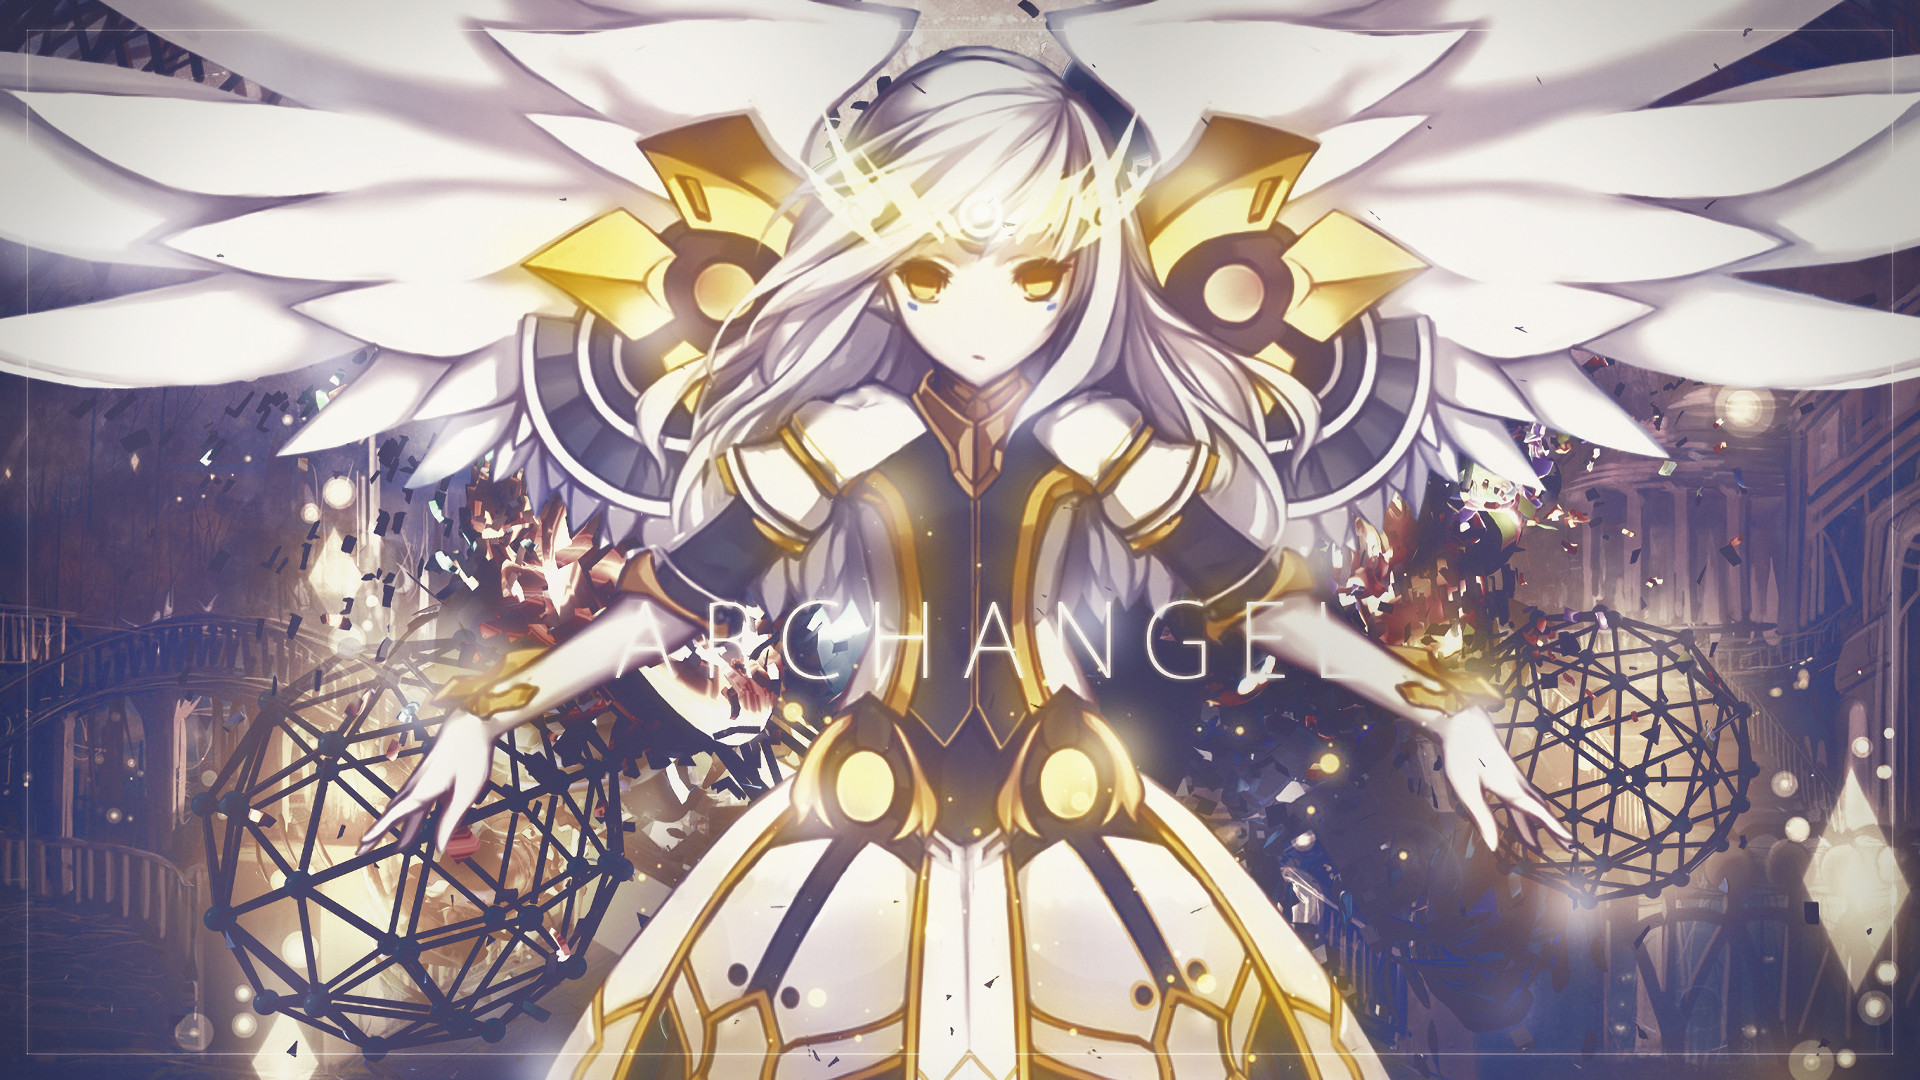 Elsword raven wallpaper download voltagebd Choice Image